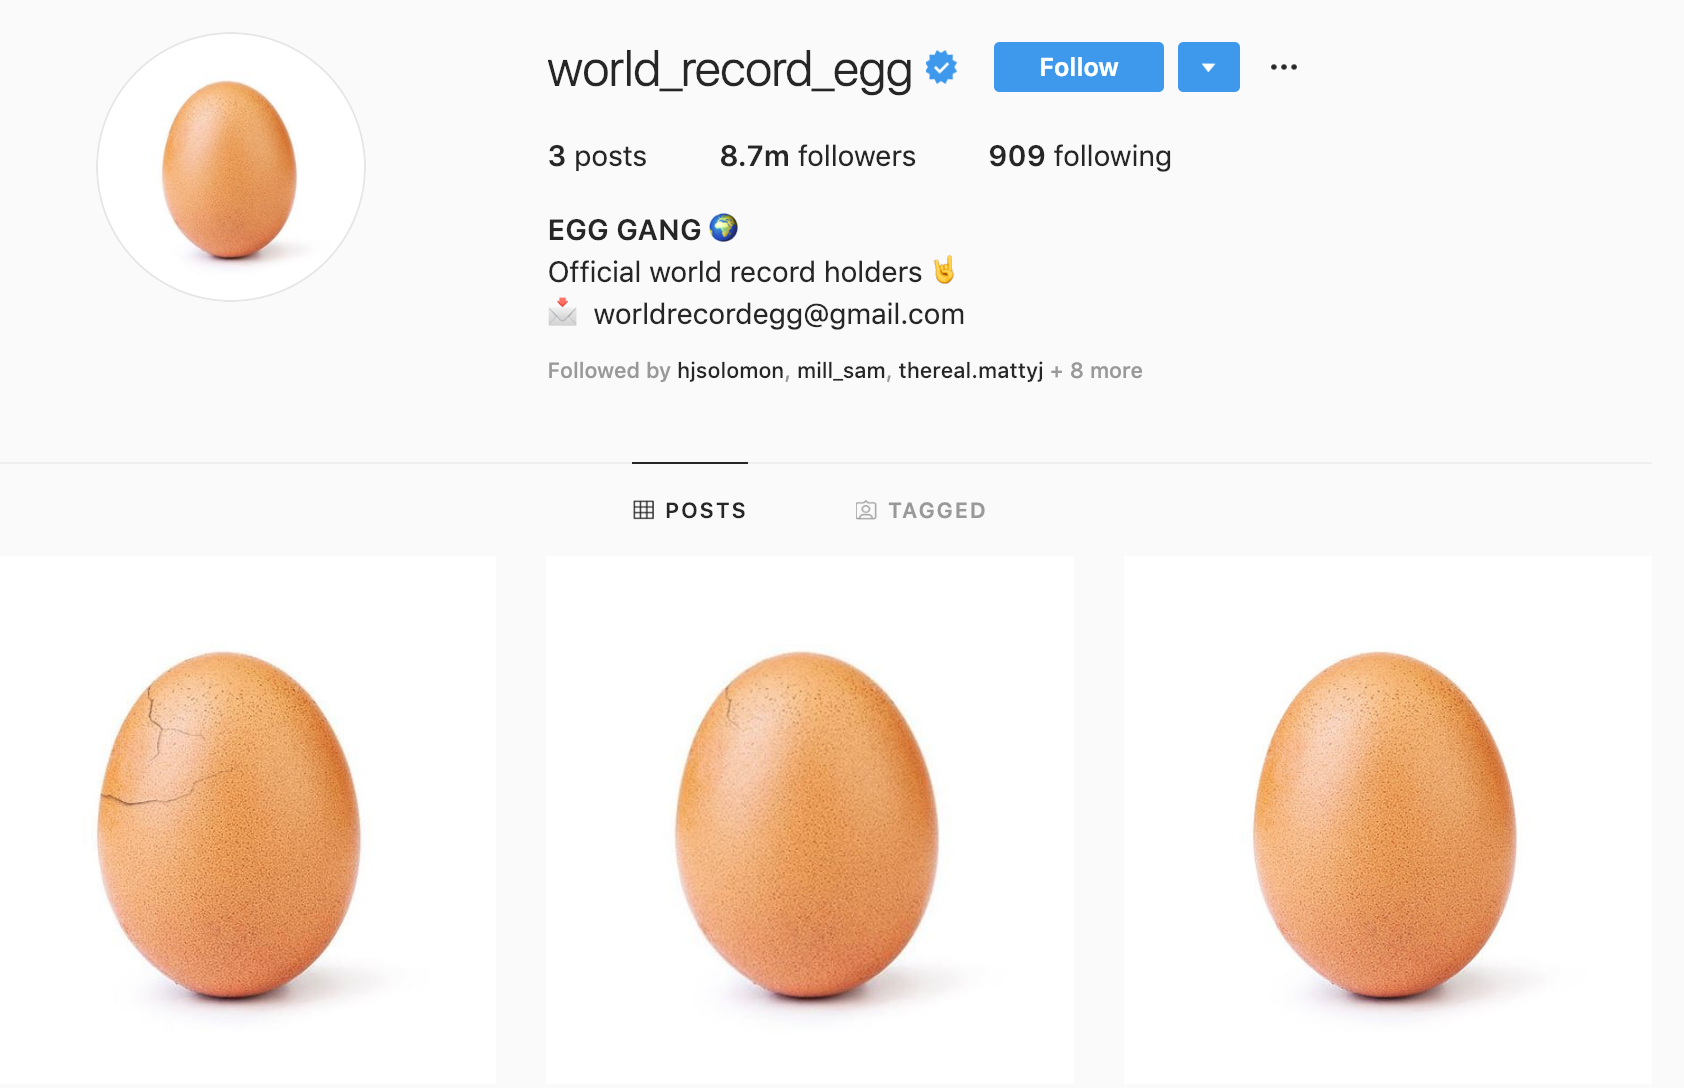 The eggs in various states of cracking. Credit: world_record_egg/Instagram